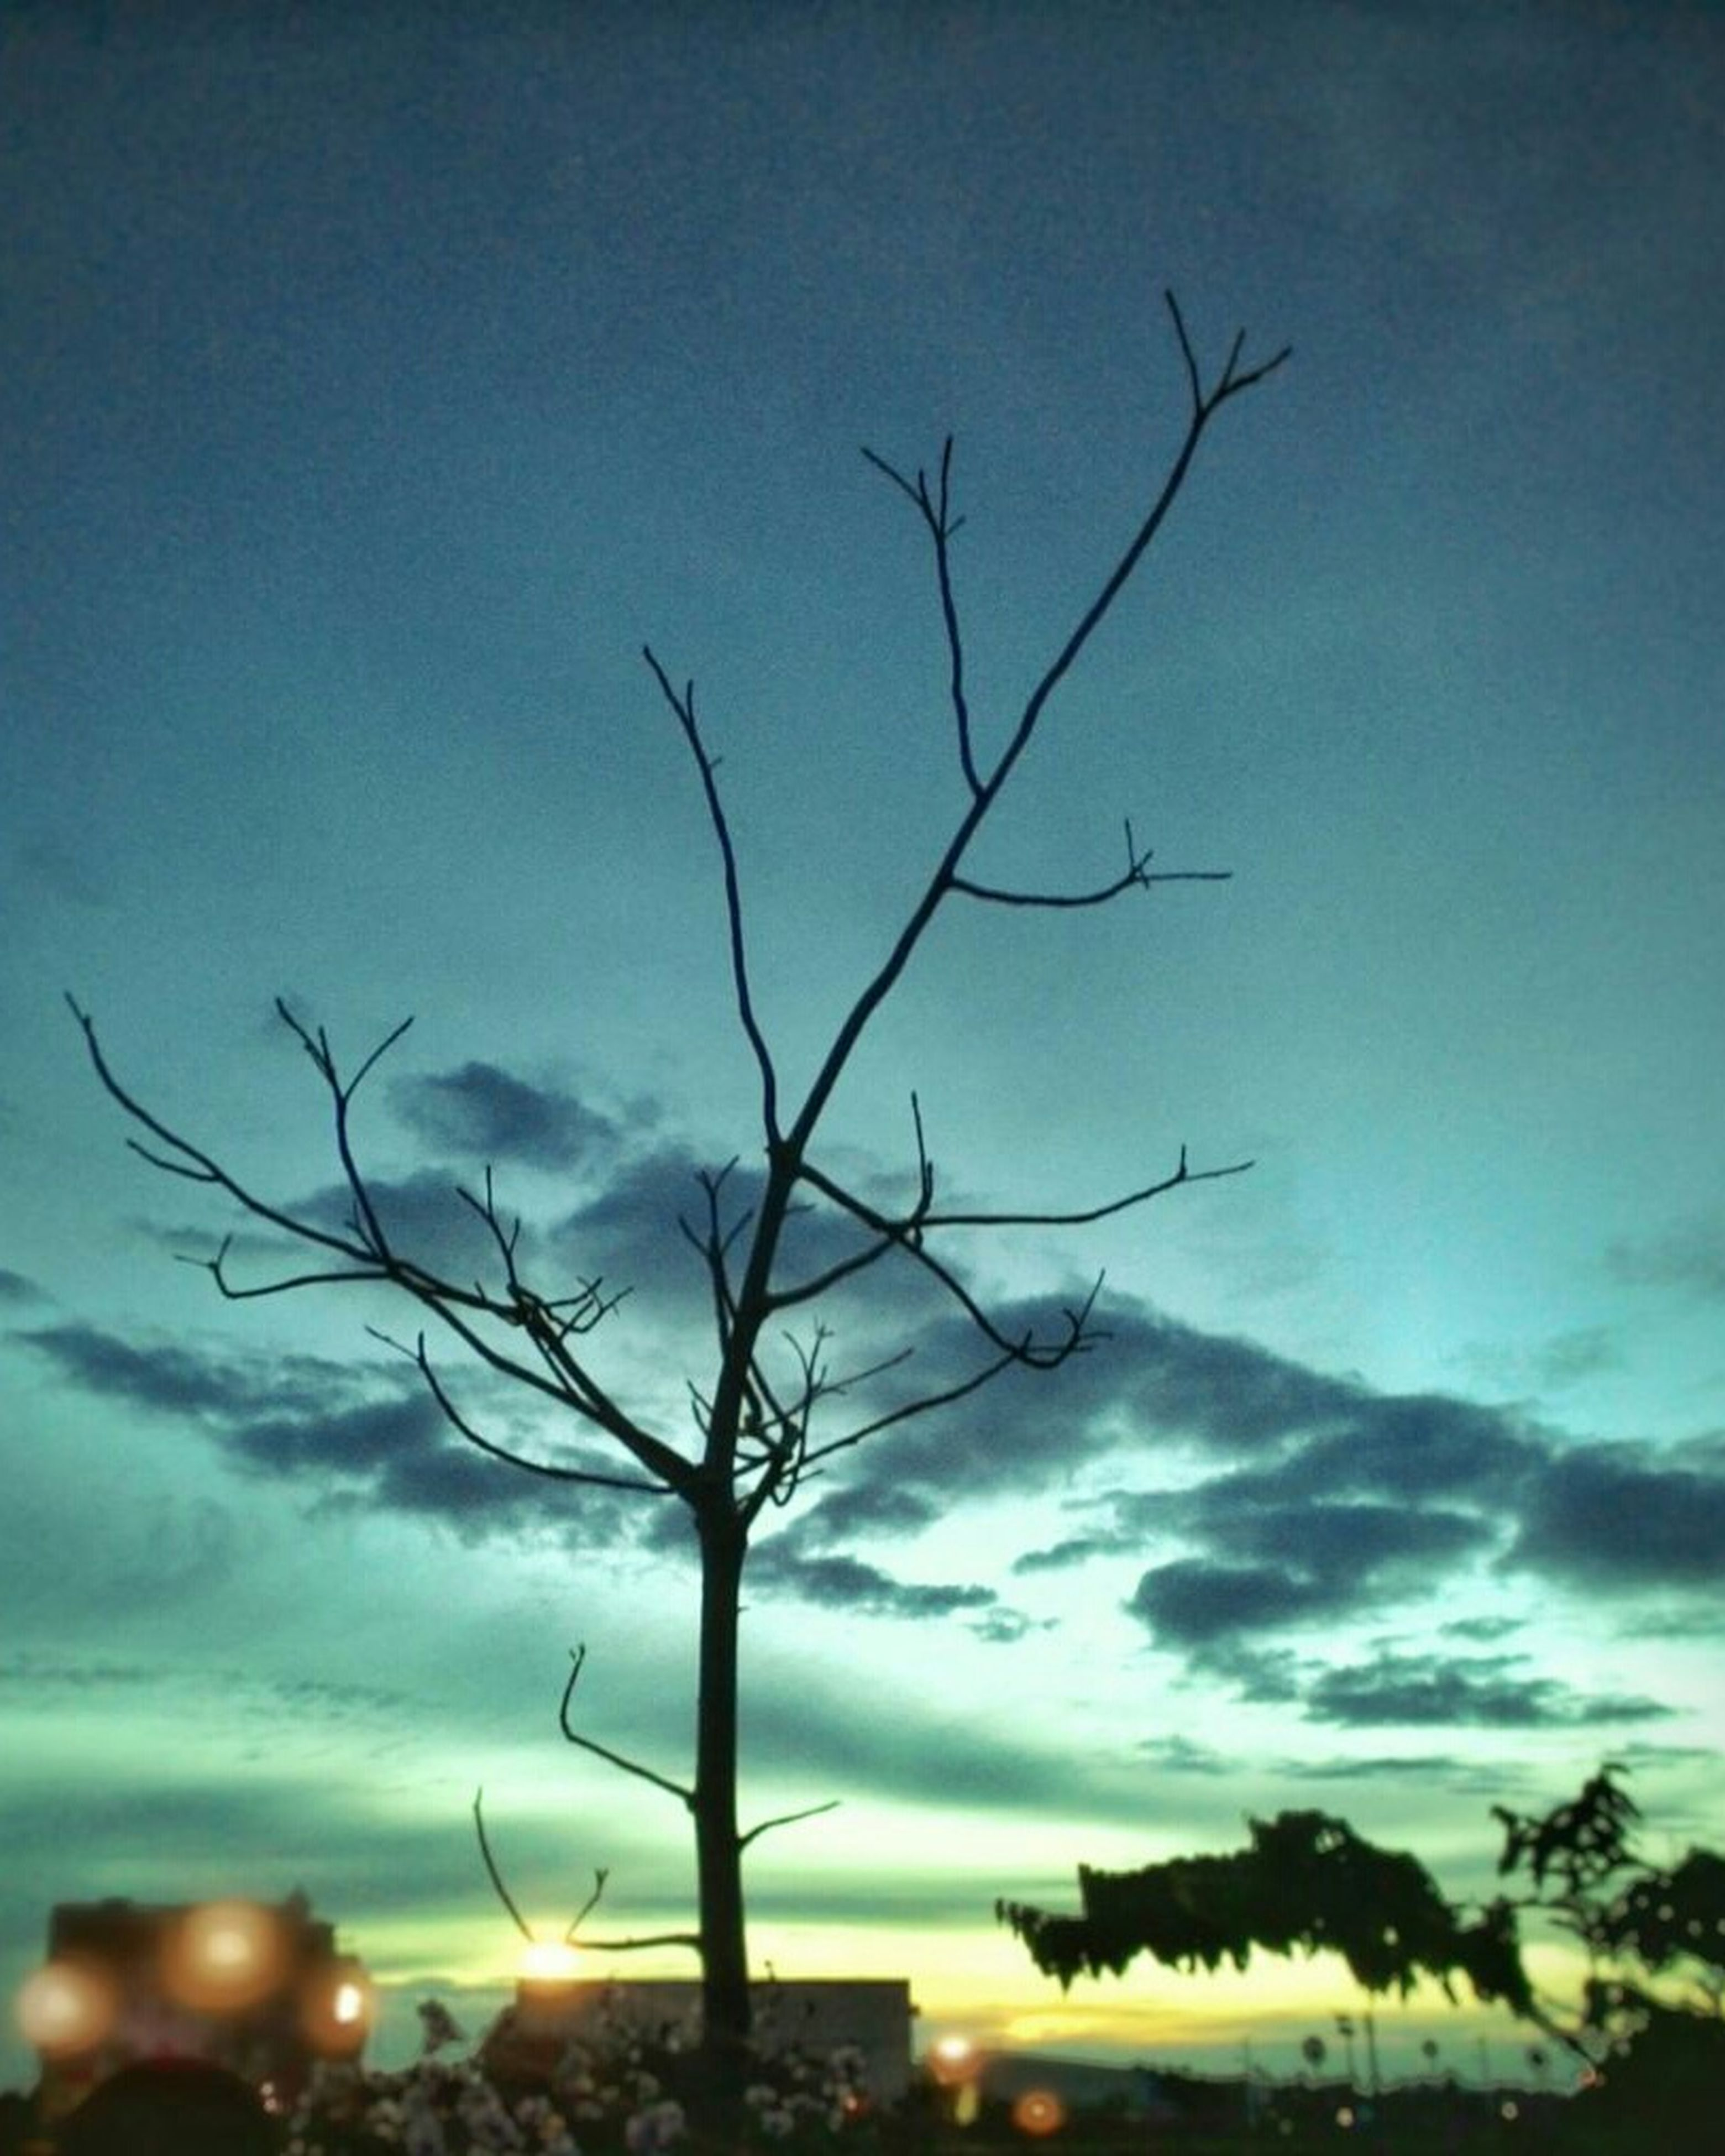 sky, bare tree, tranquility, cloud - sky, silhouette, sunset, tranquil scene, beauty in nature, nature, scenics, branch, low angle view, cloud, tree, dusk, outdoors, idyllic, cloudy, blue, no people